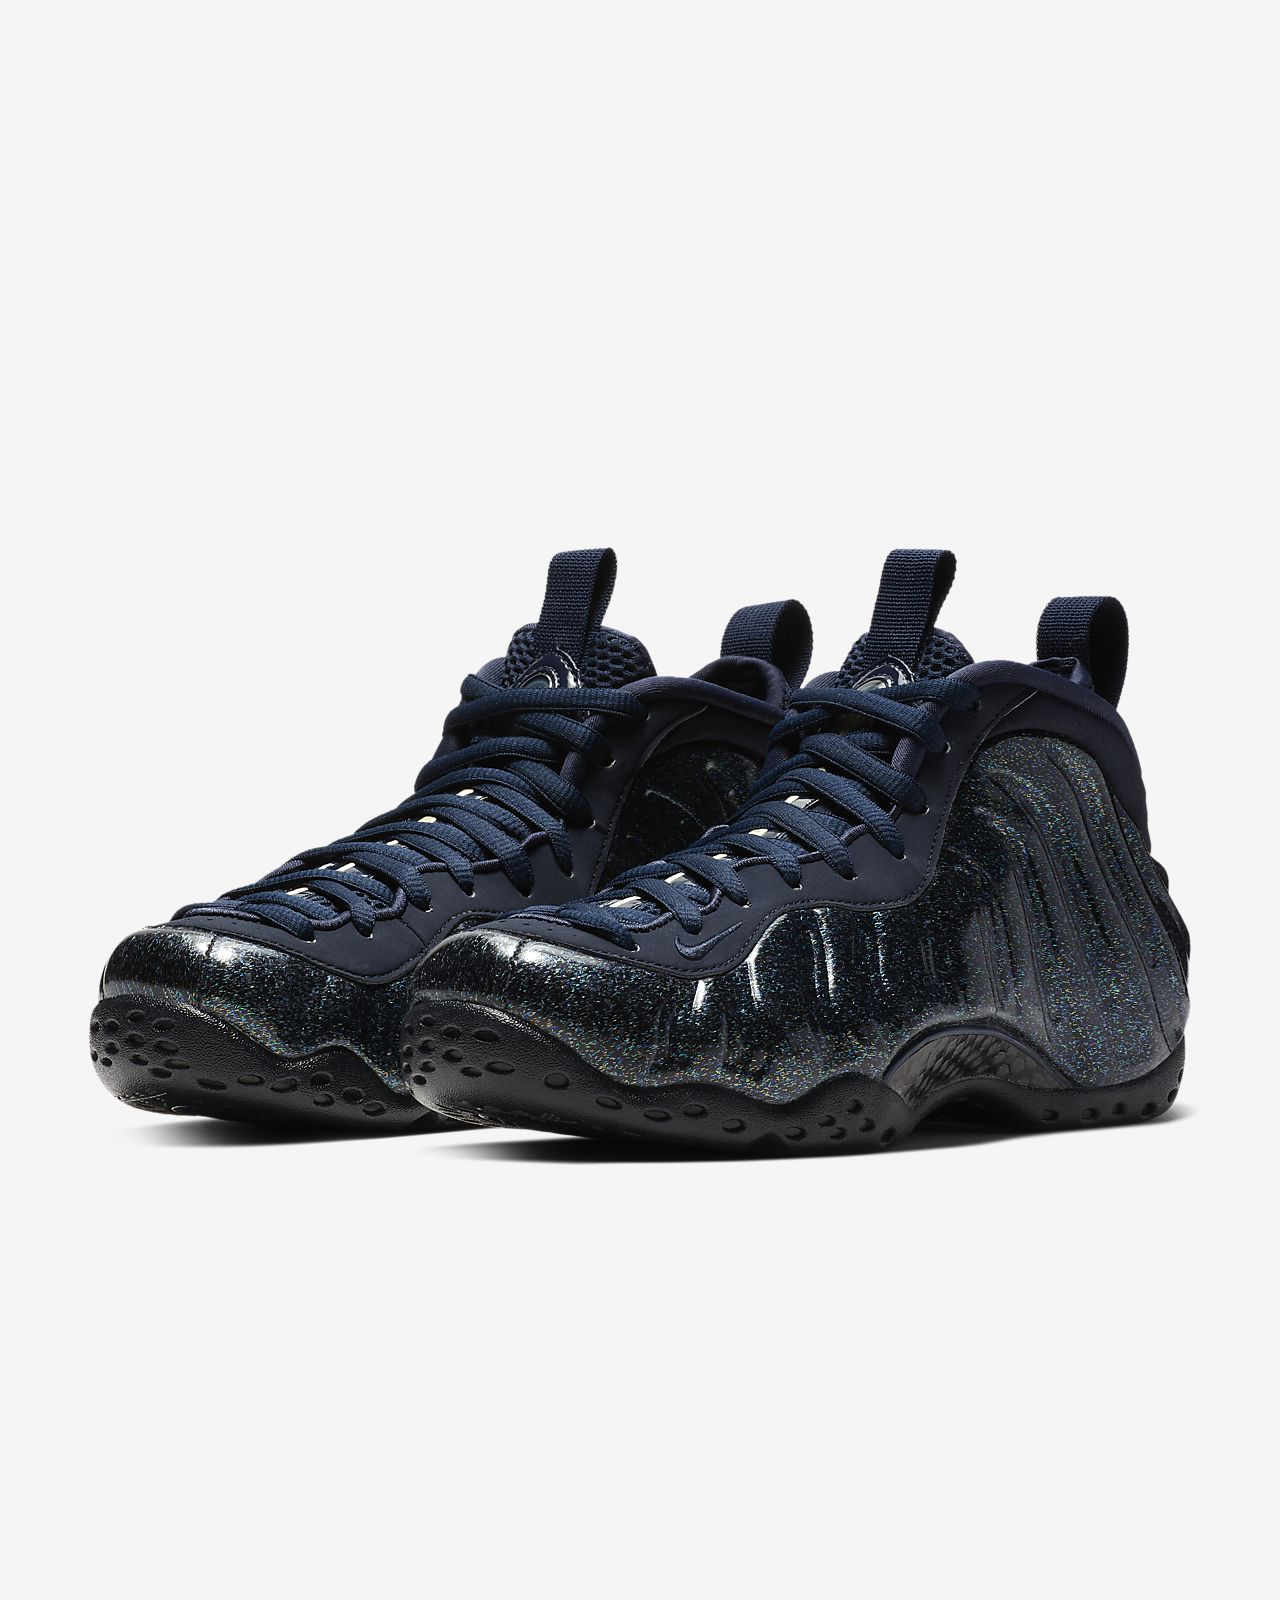 a56cd611c2a Nike Air Foamposite 1 Women s Shoe. Nike.com